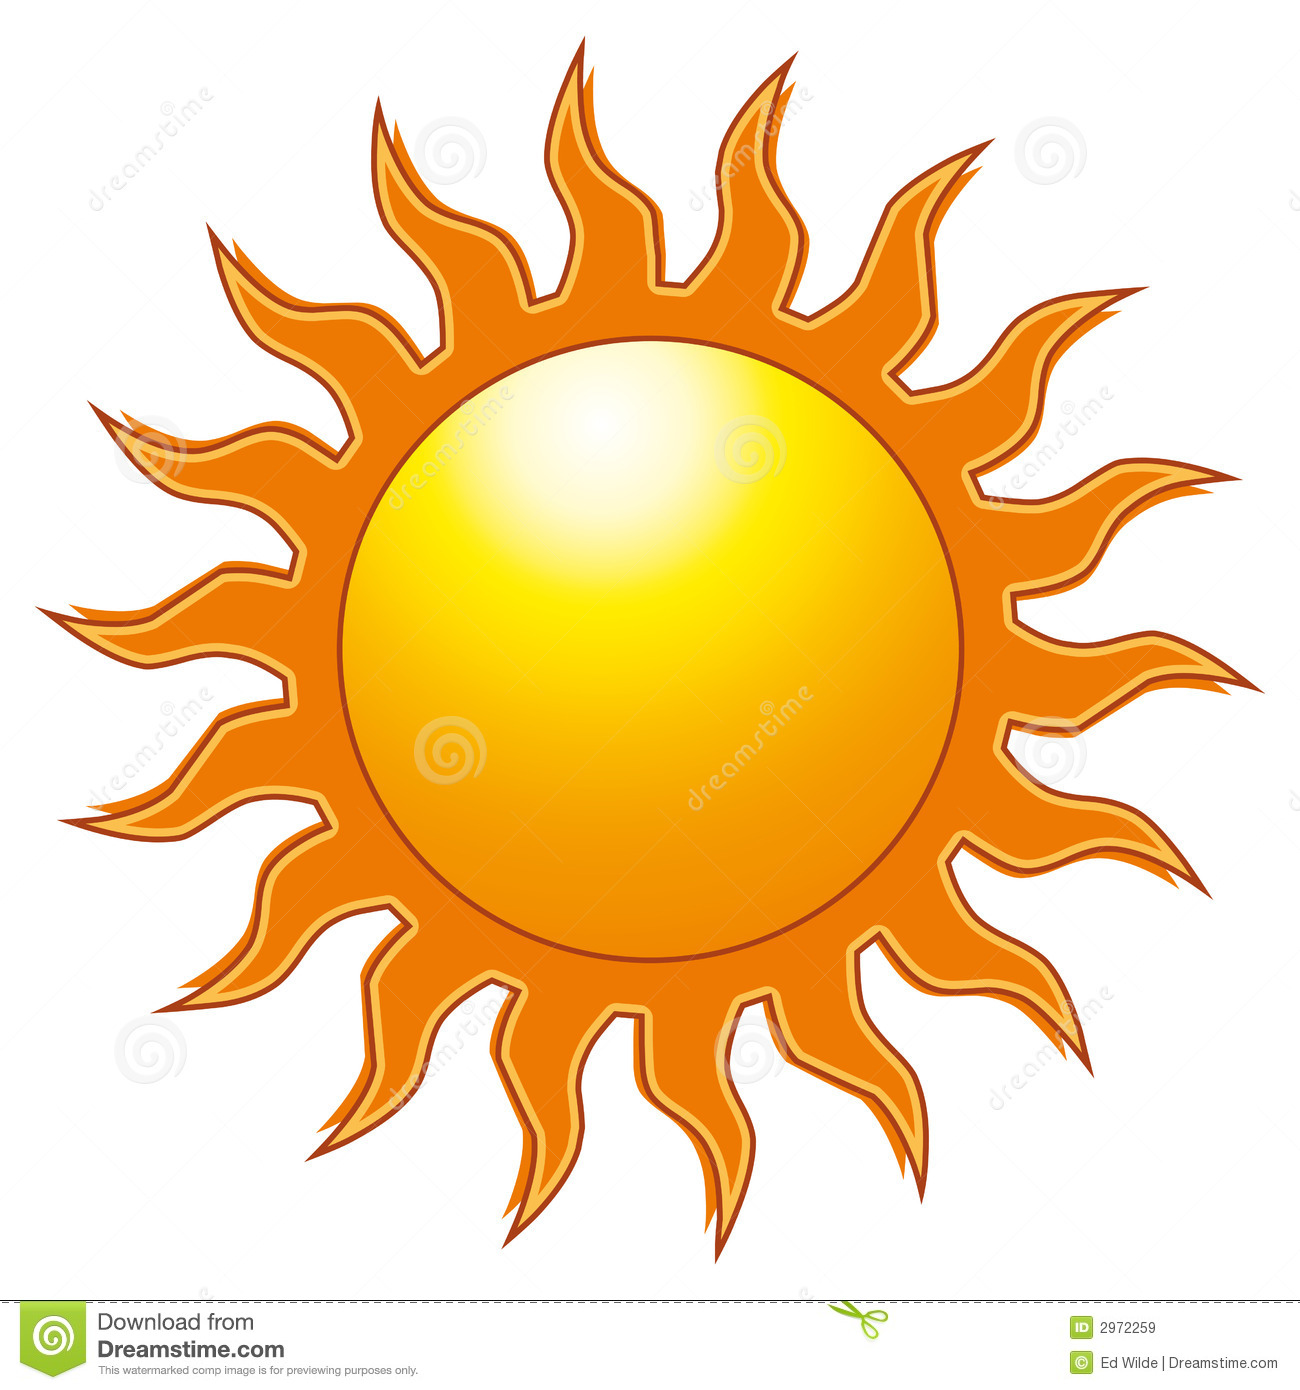 Clip Art The Sun Clipart go outside in the sun clipart kid heat and i don t mean cops or a sandra bullock flick